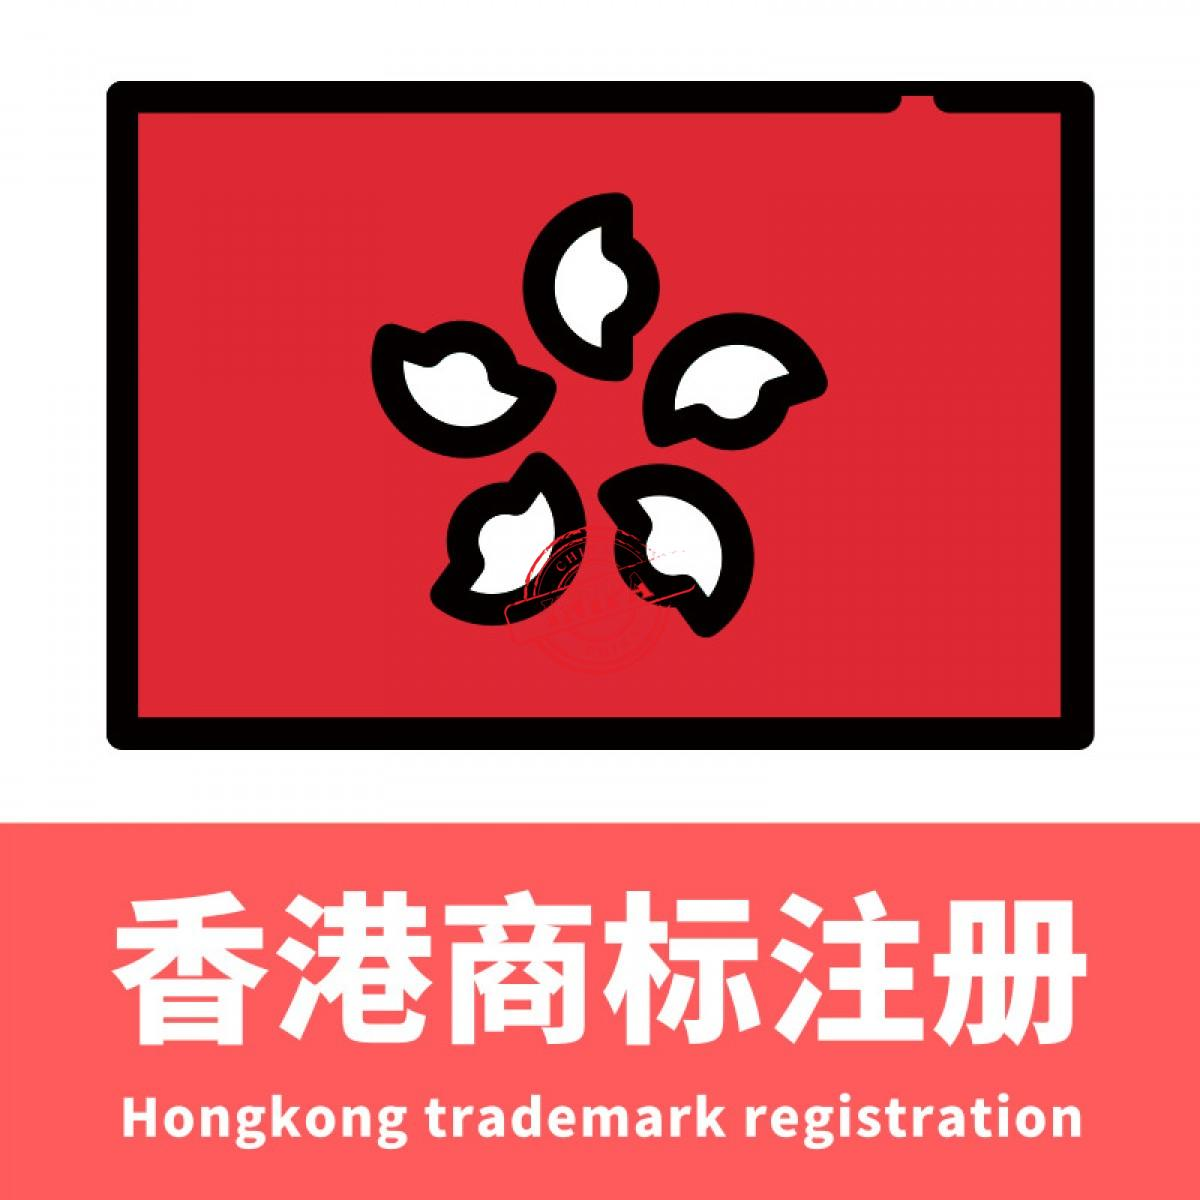 香港商标注册/Hongkong trademark registration